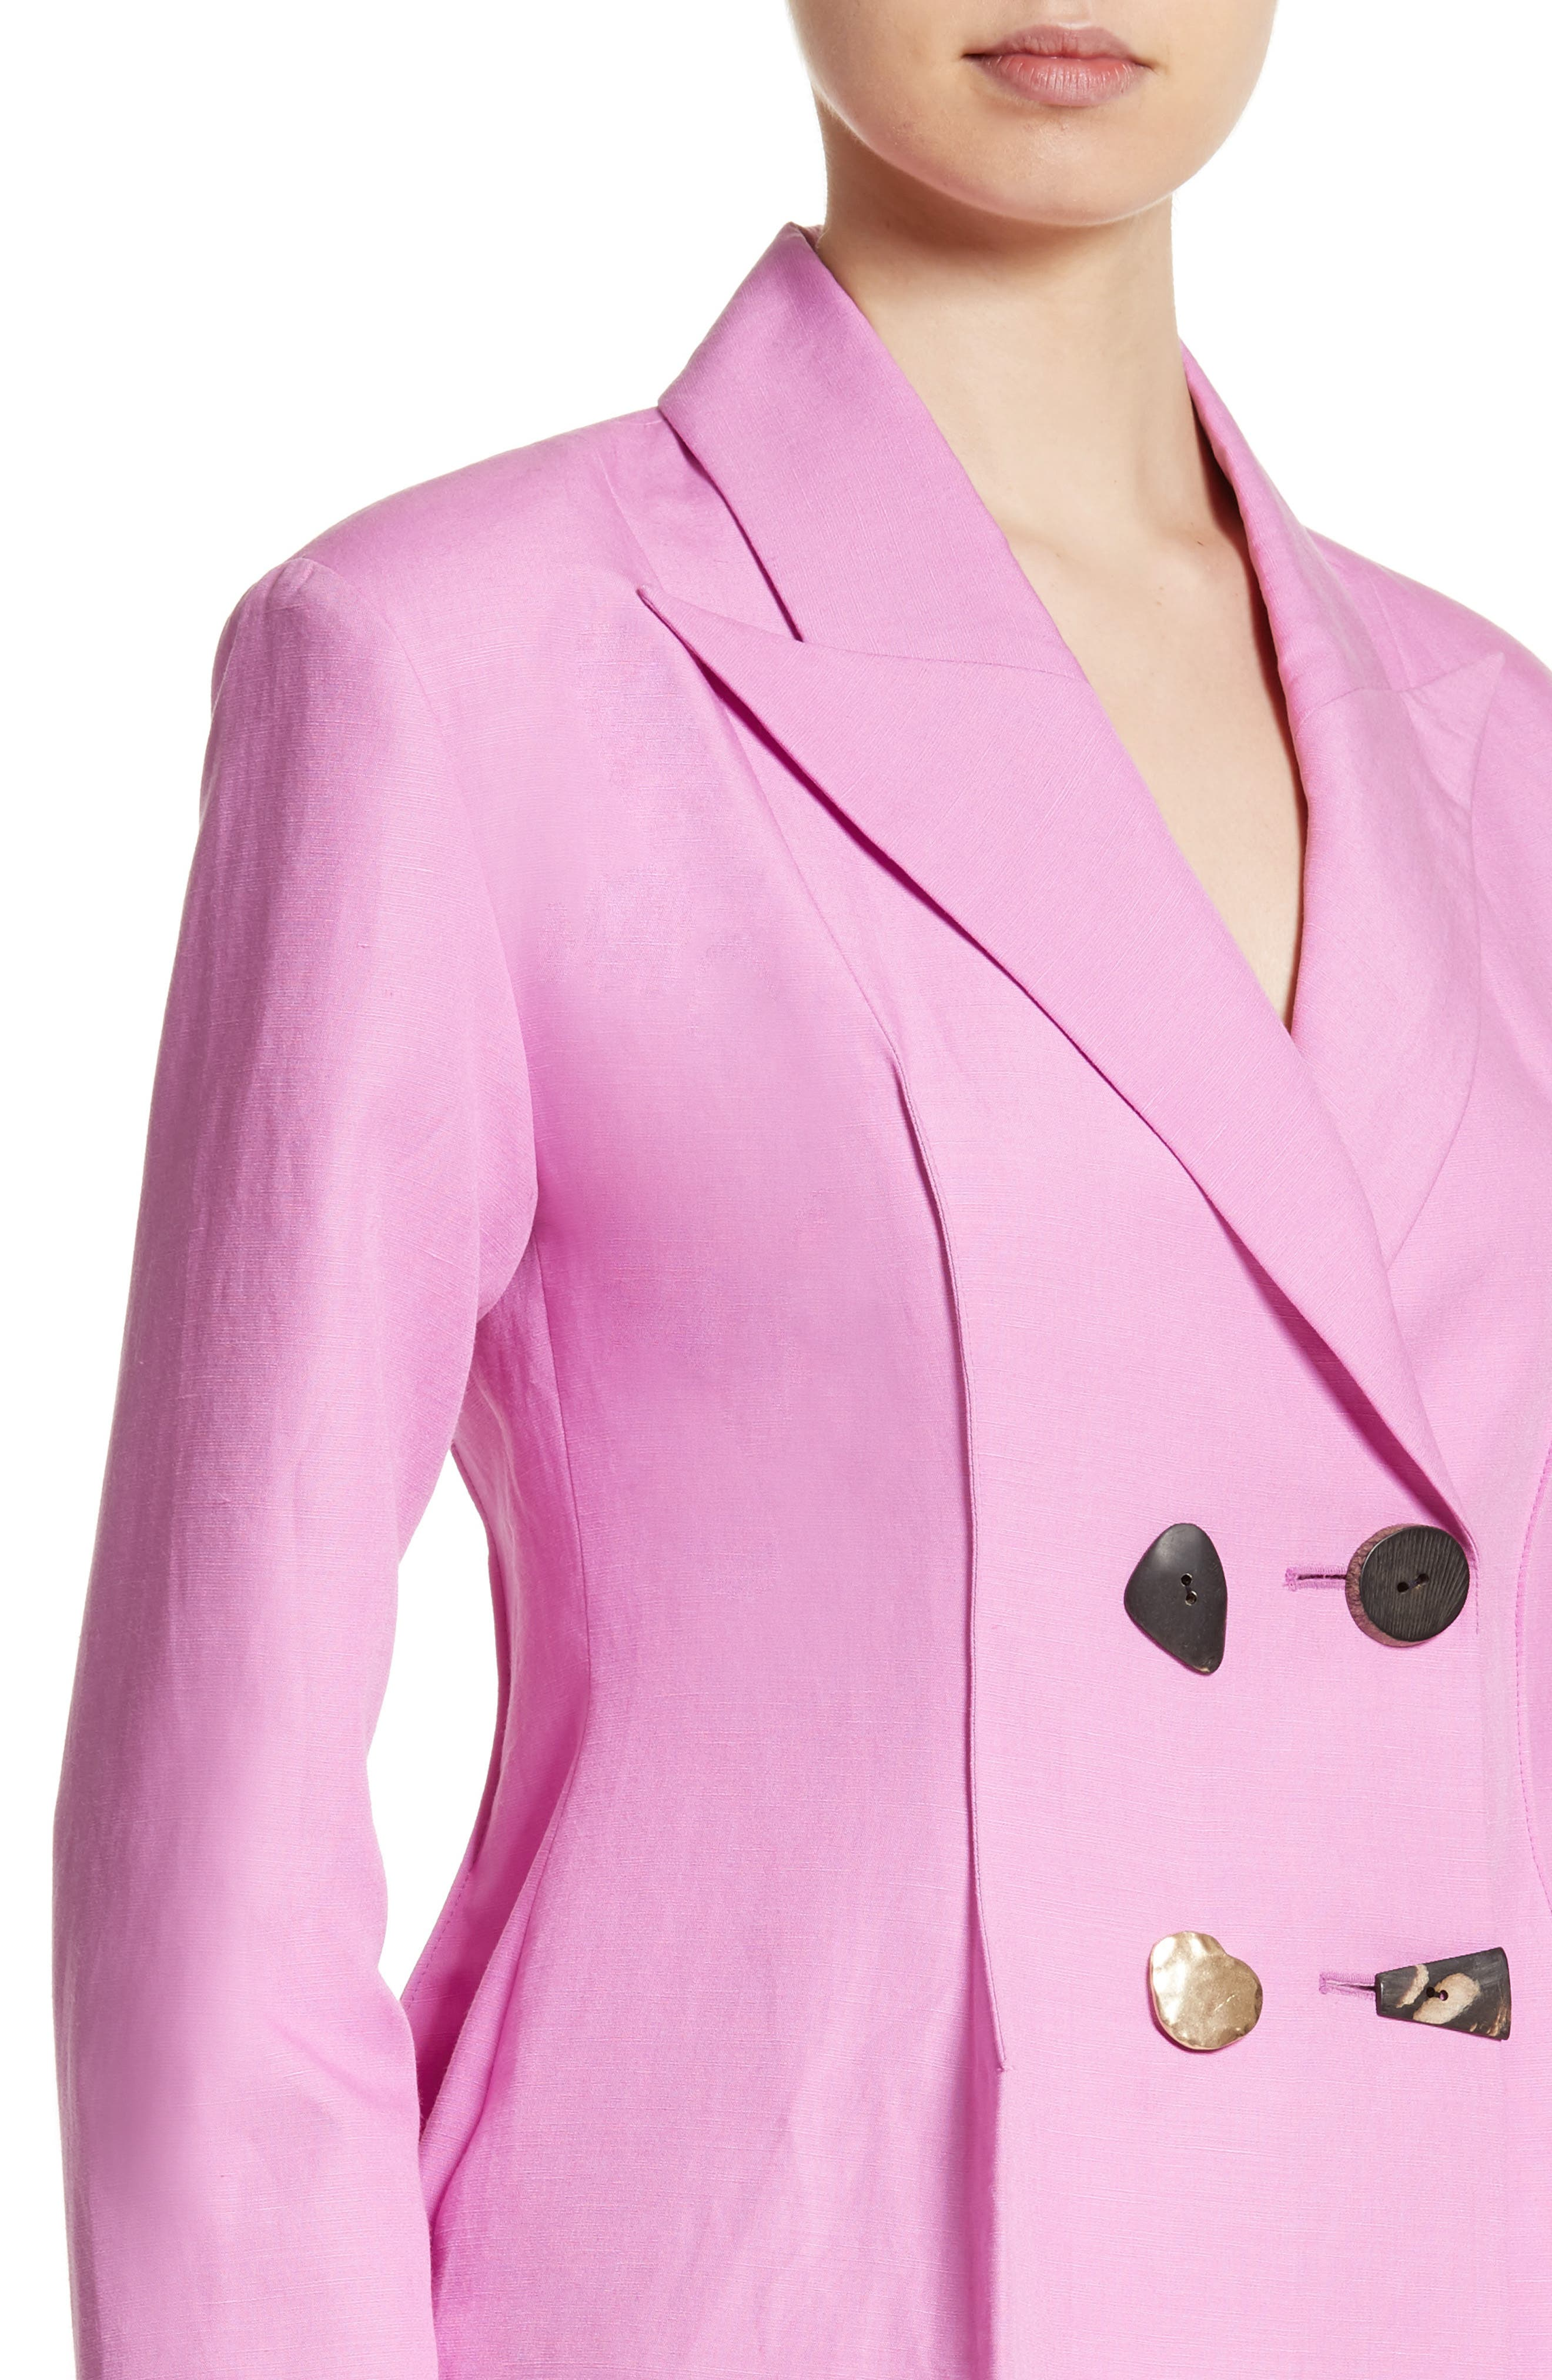 Double Breasted Jacket,                             Alternate thumbnail 4, color,                             Linen Taffy Pink